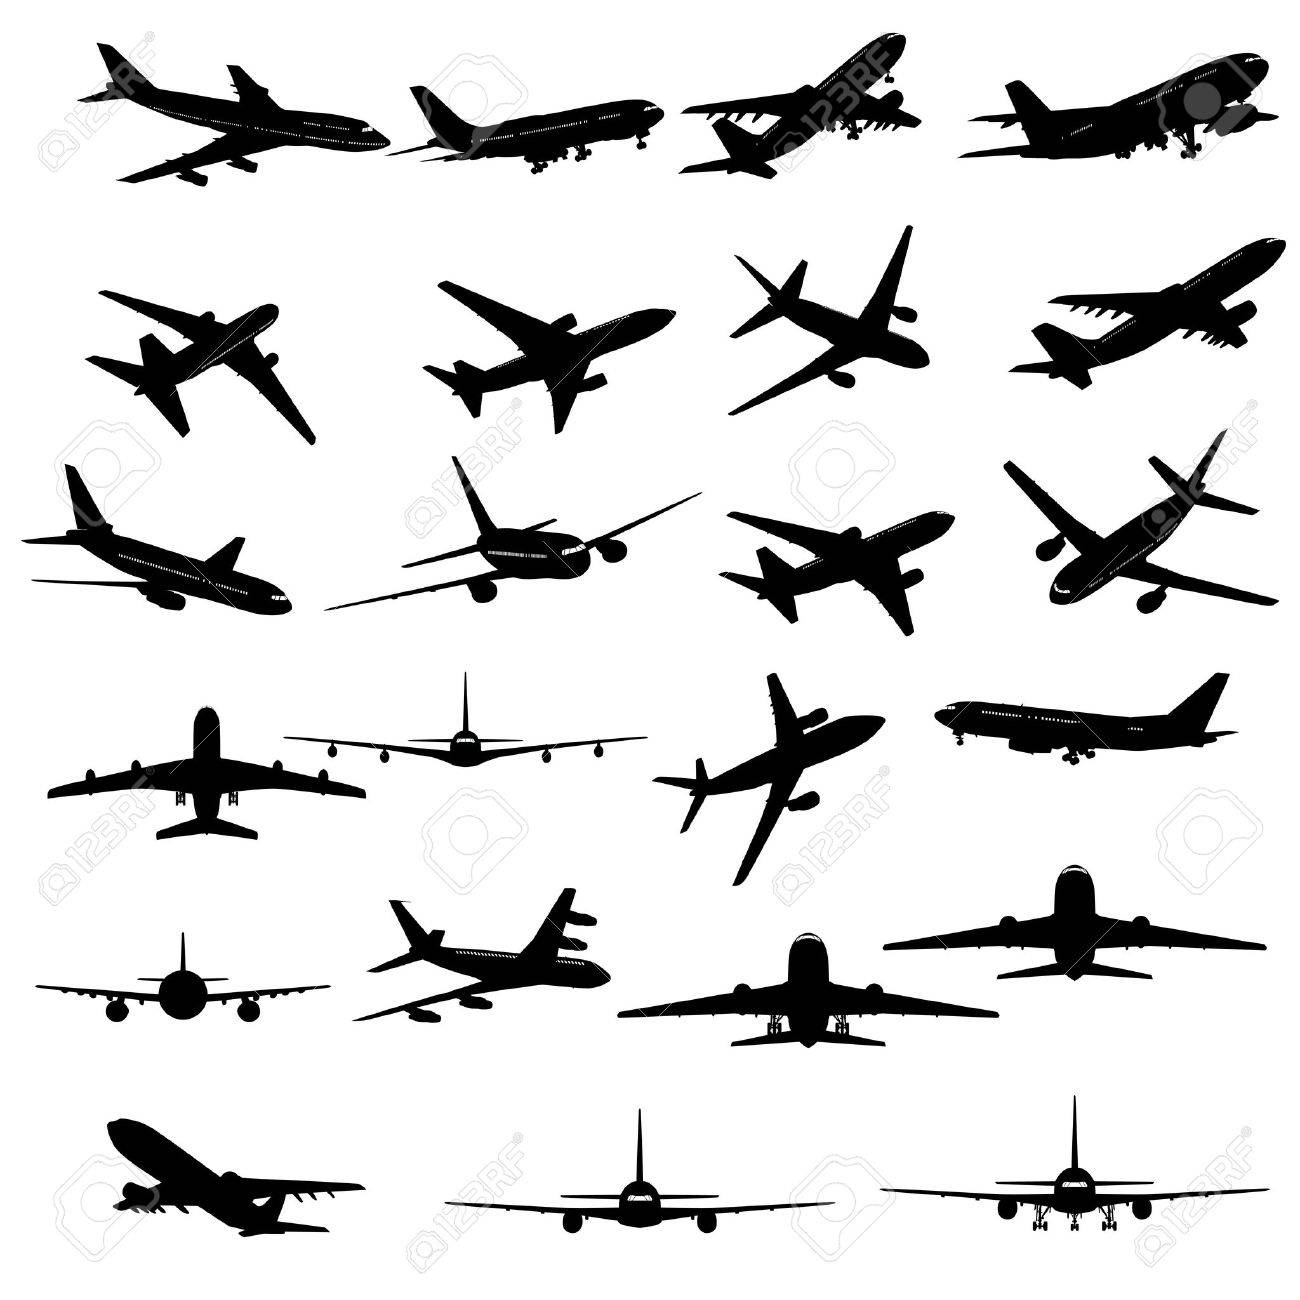 Big collection of different airplane silhouettes. Stock Vector - 9466253